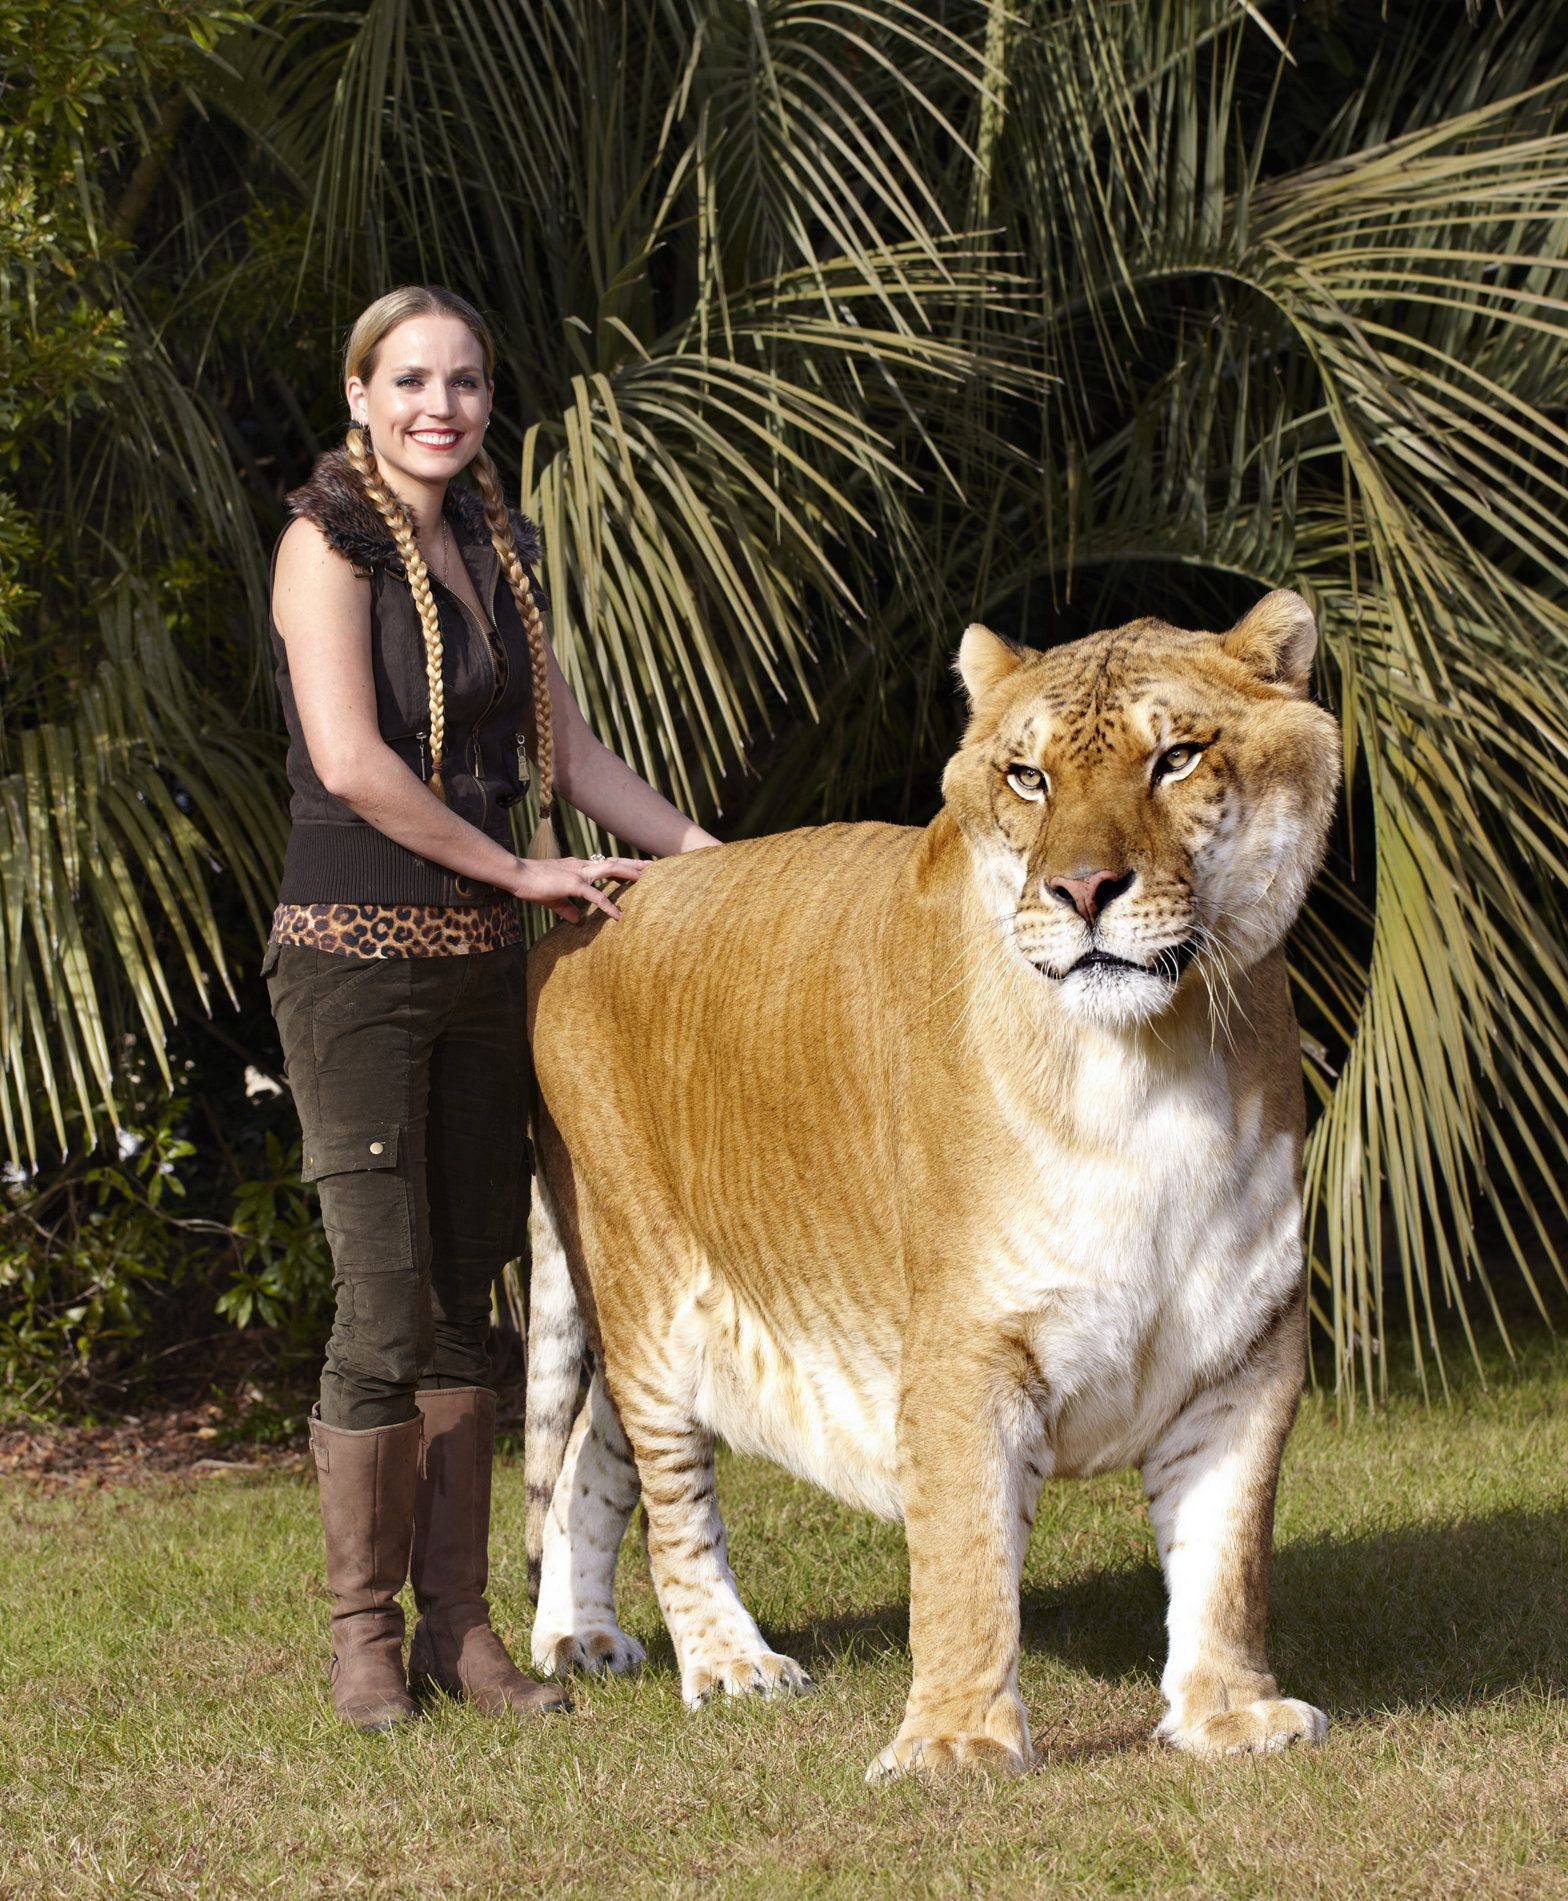 Biggest Cat In The World Guinness 2012 guinness world records® amazing animals | animals | pinterest